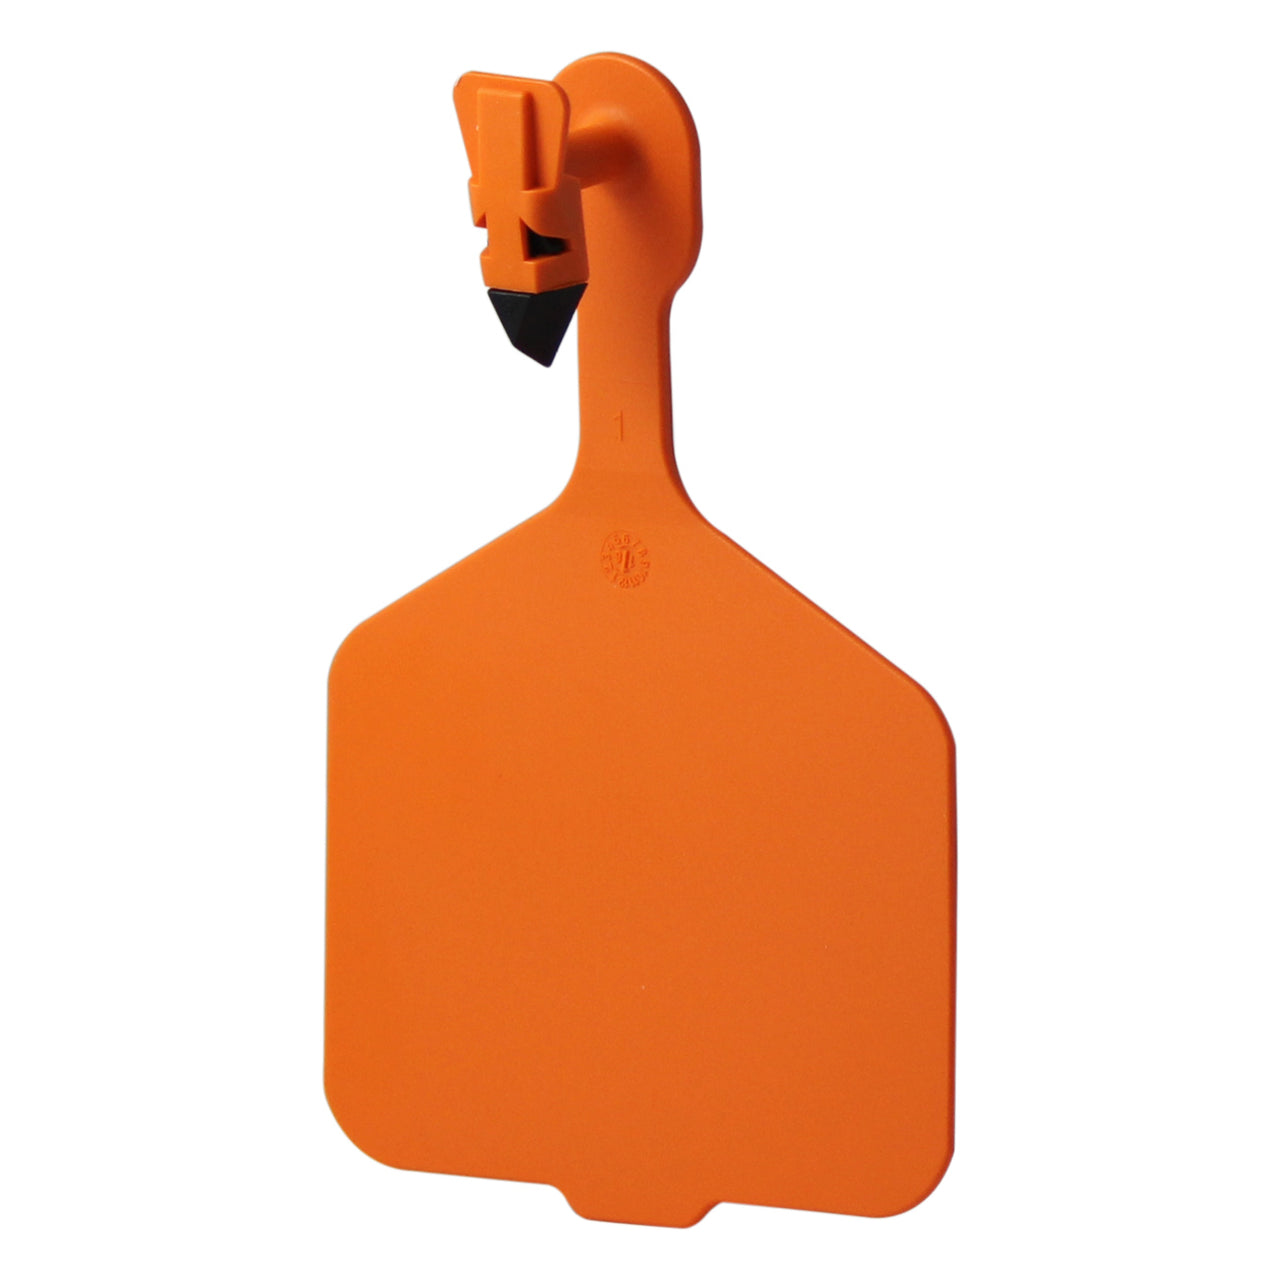 Leader 1Pc Cow Tags Orange 25S - Ear Tags Leader Products - Canada